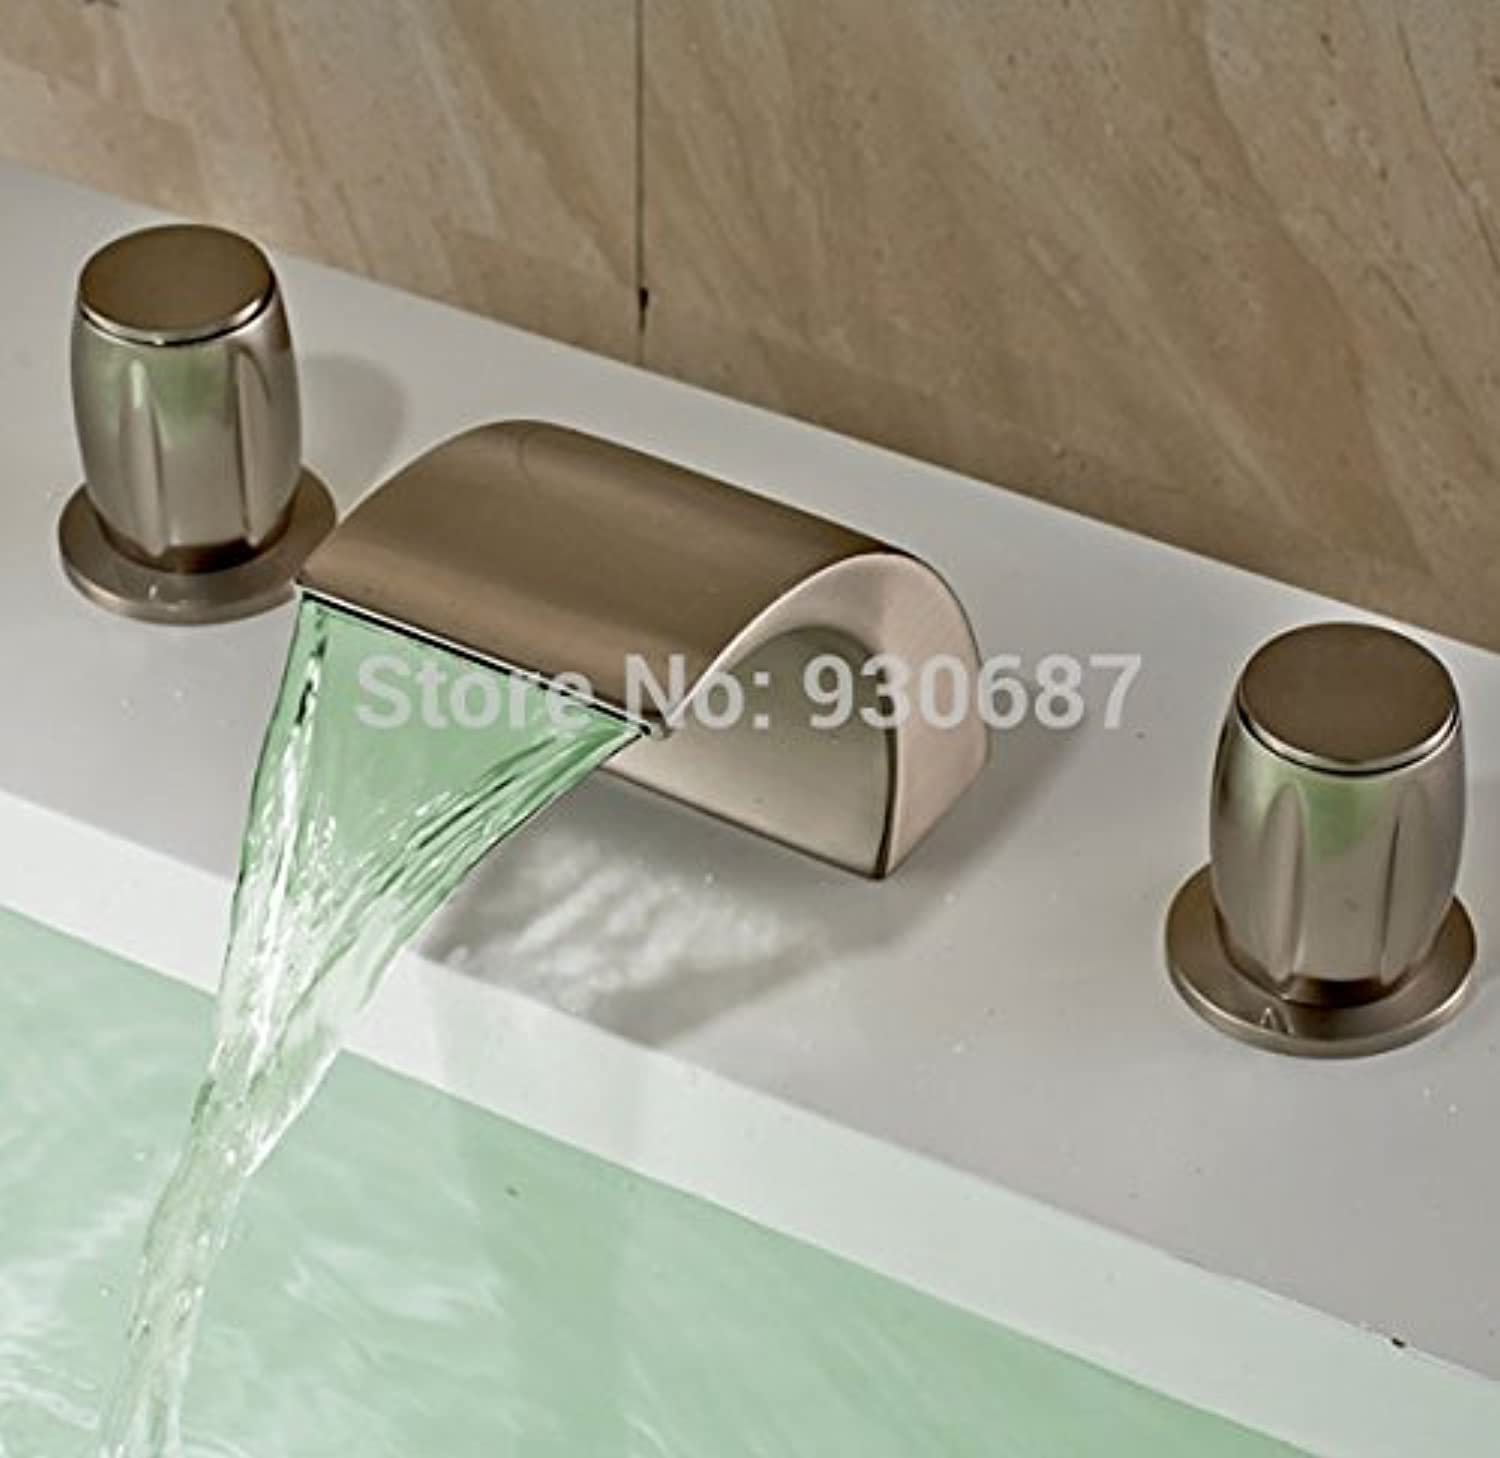 Retro Deluxe FaucetingModern Led color Changing Bathroom Sink Faucet Brushed Nickel Mixer Tap